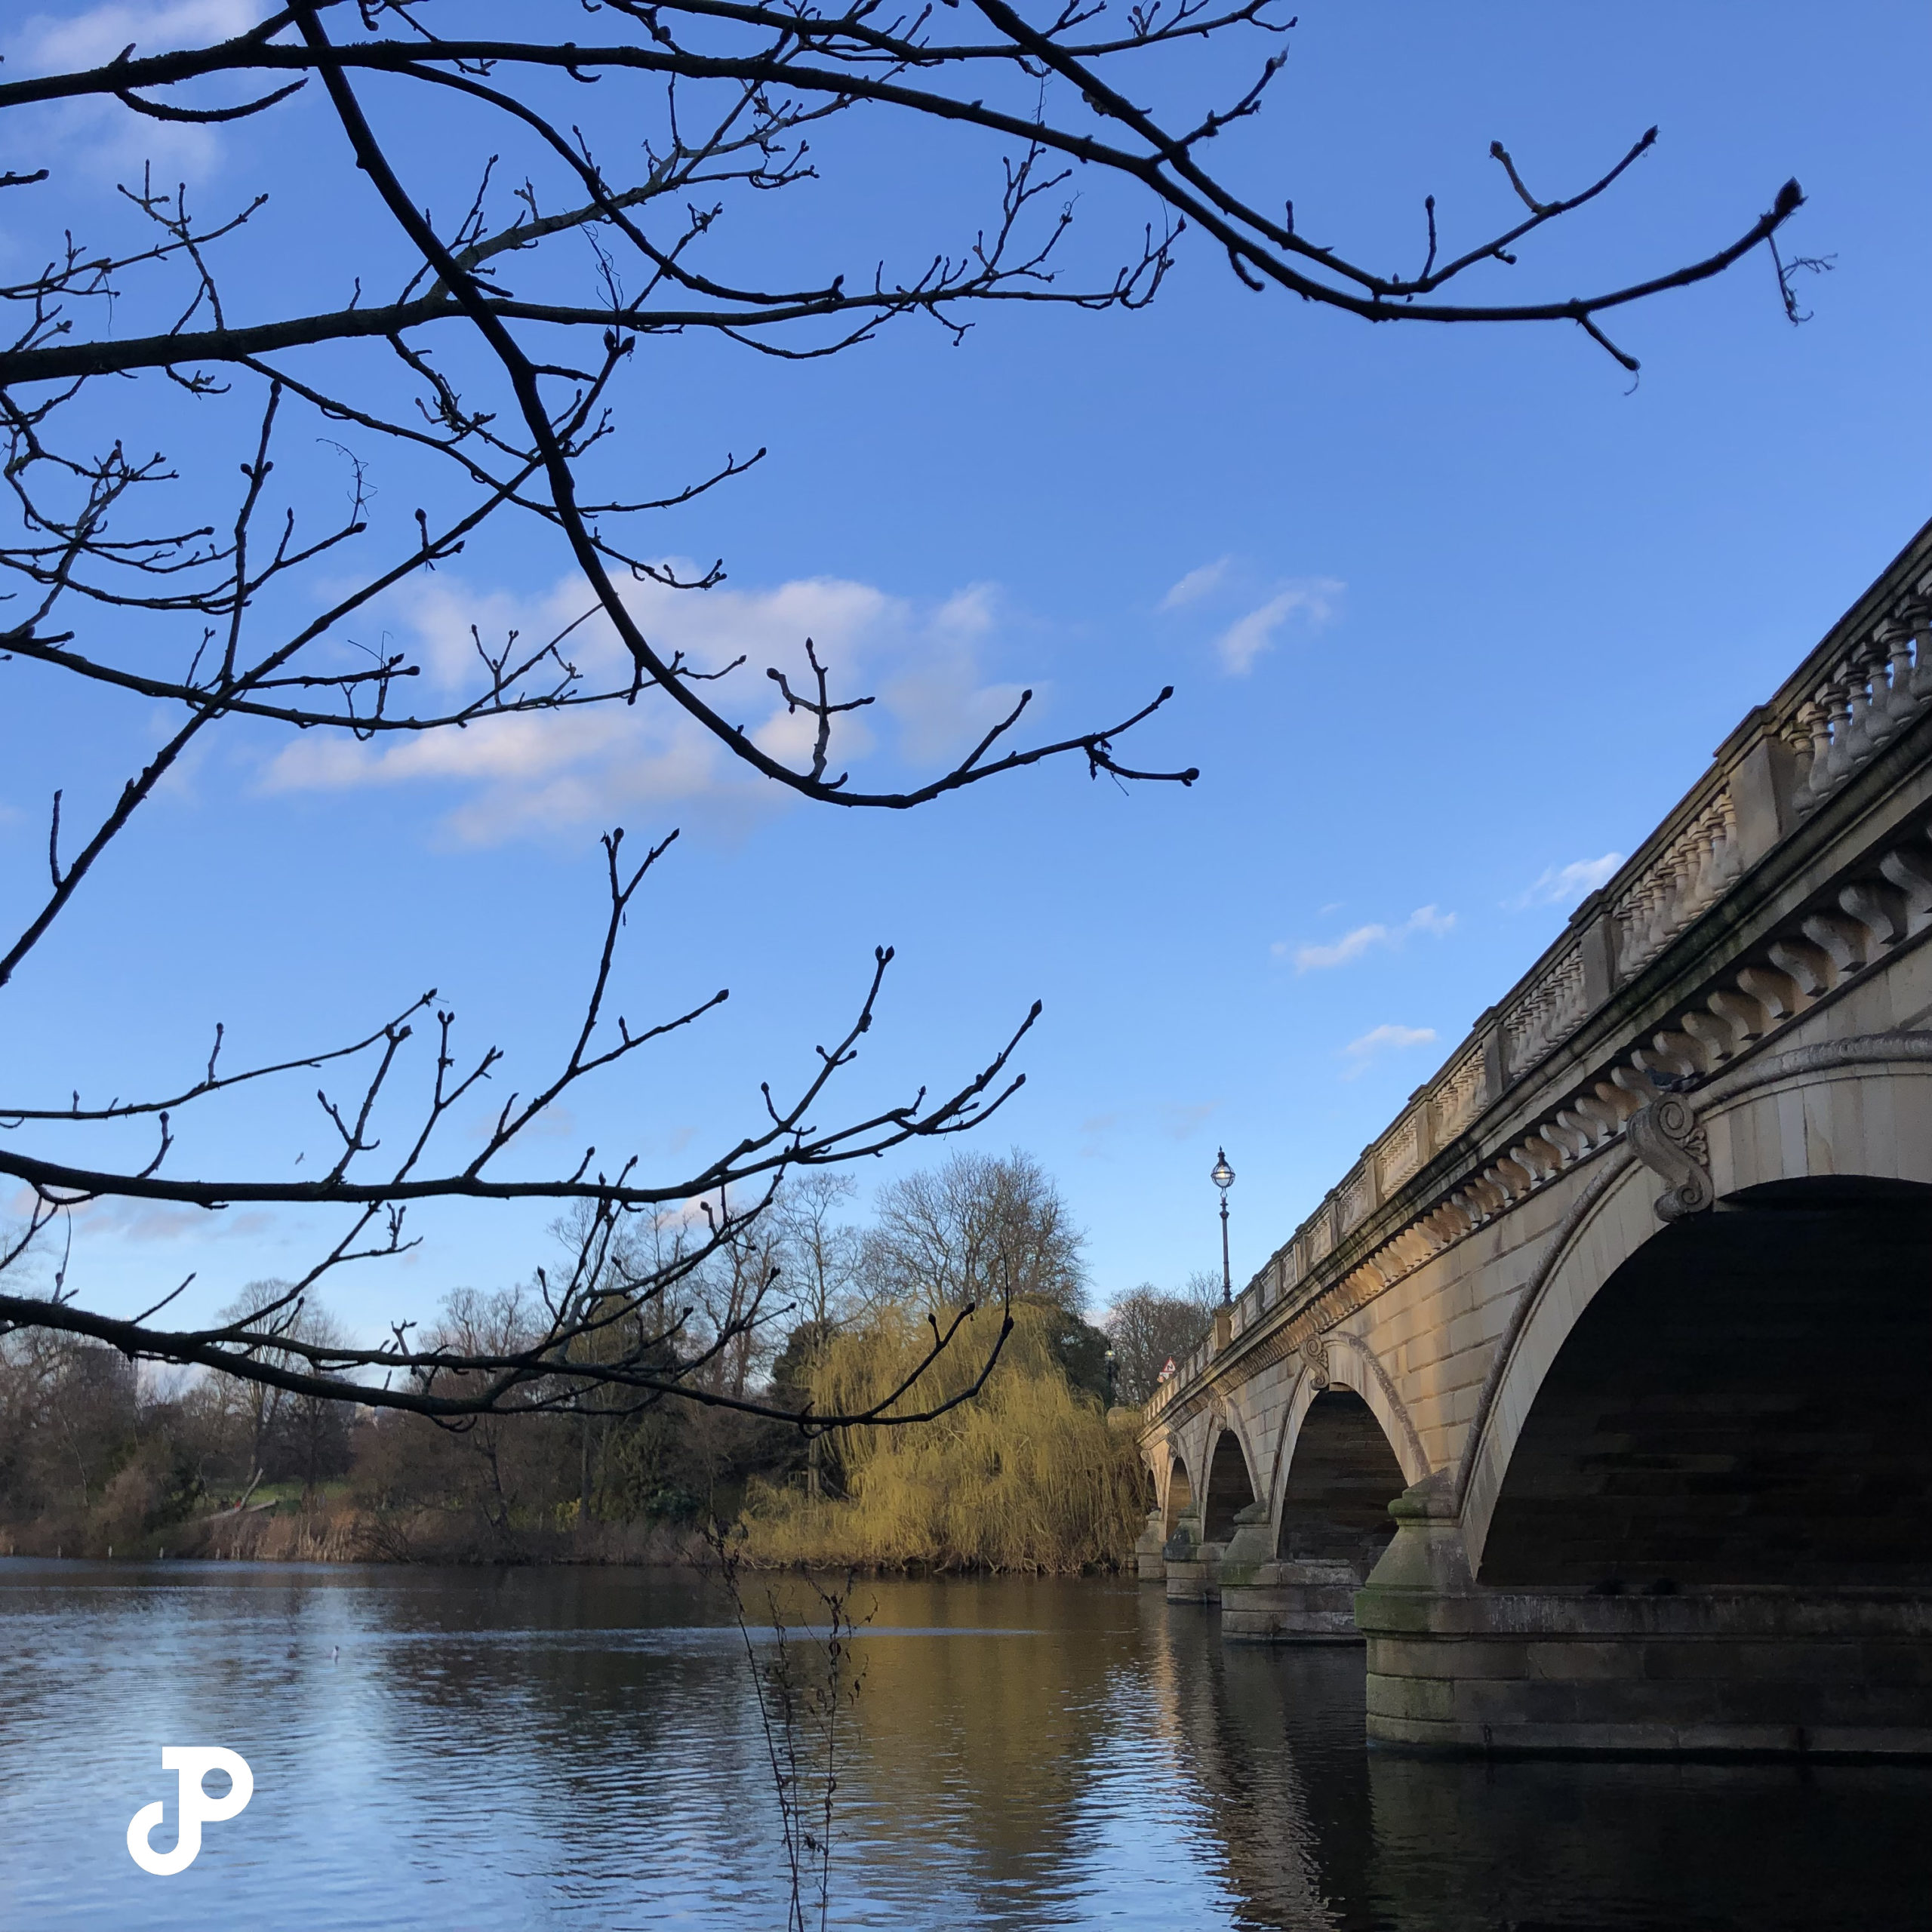 a bridge spanning the Serpentine river in Hyde Park